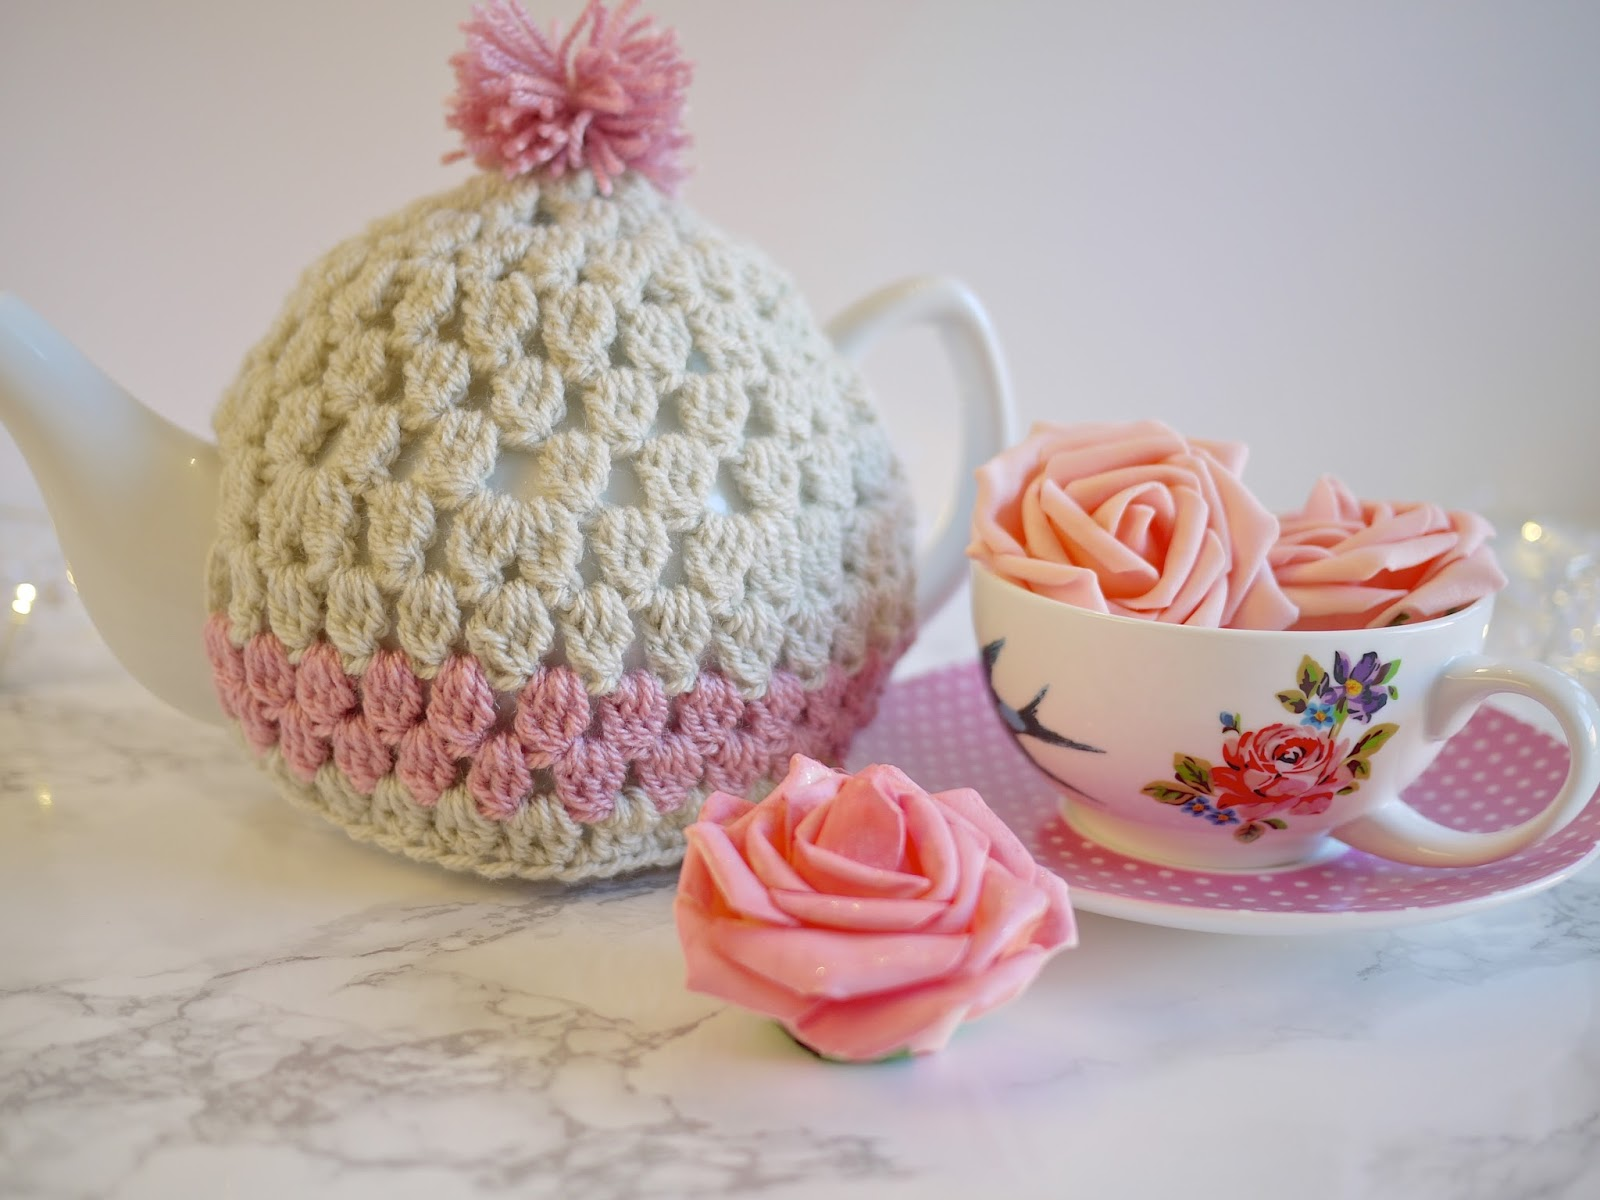 Free Crochet Pattern Small Tea Cozy : Crochet Tea Cosy Pattern - Bella Coco by Sarah-Jayne